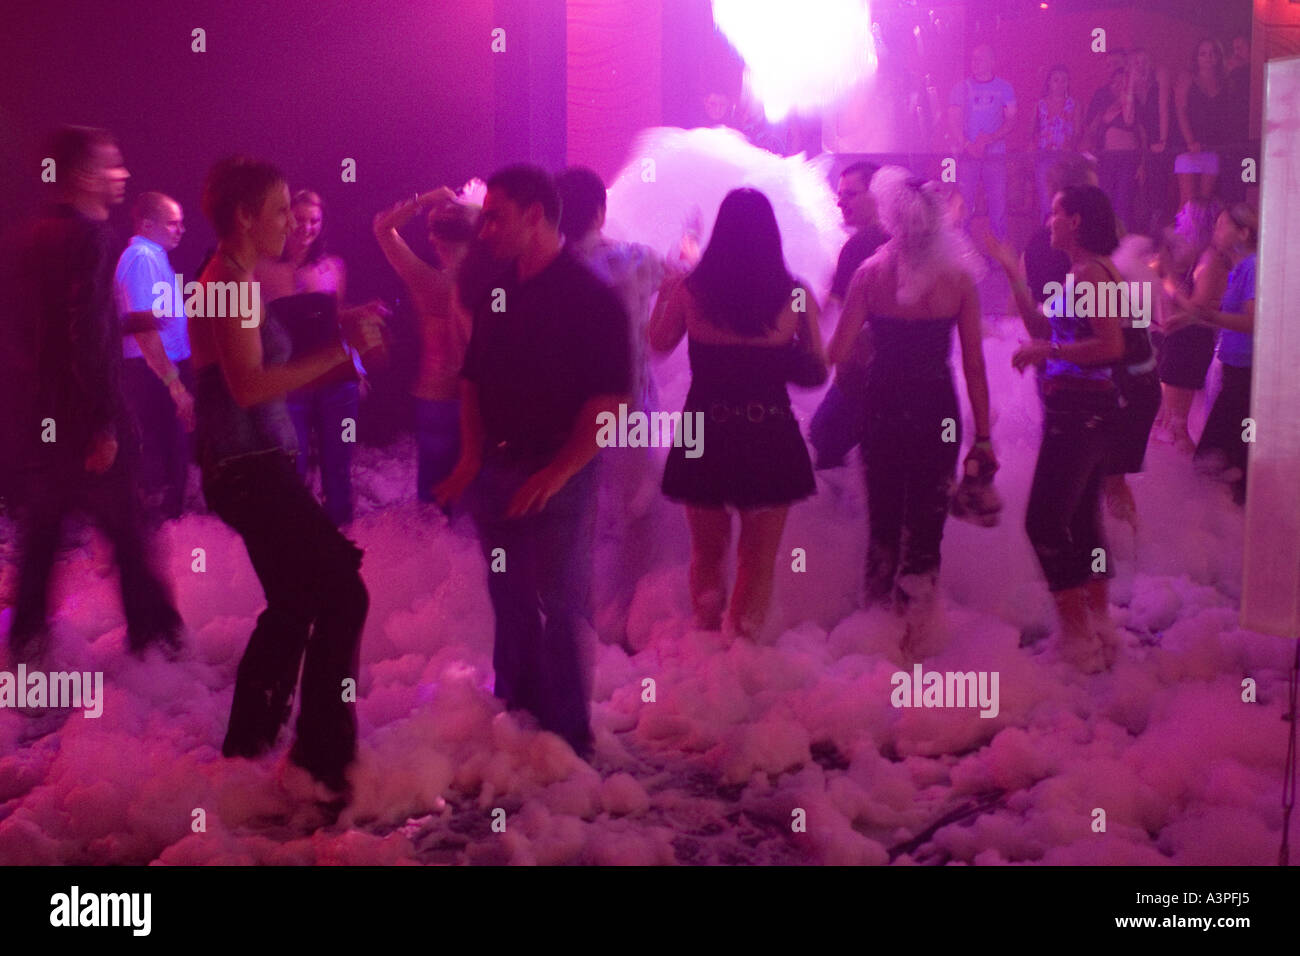 Group of people dancing in nightclub. Foam Party. Exit Club, Greenpoint, Brooklyn, New York. - Stock Image